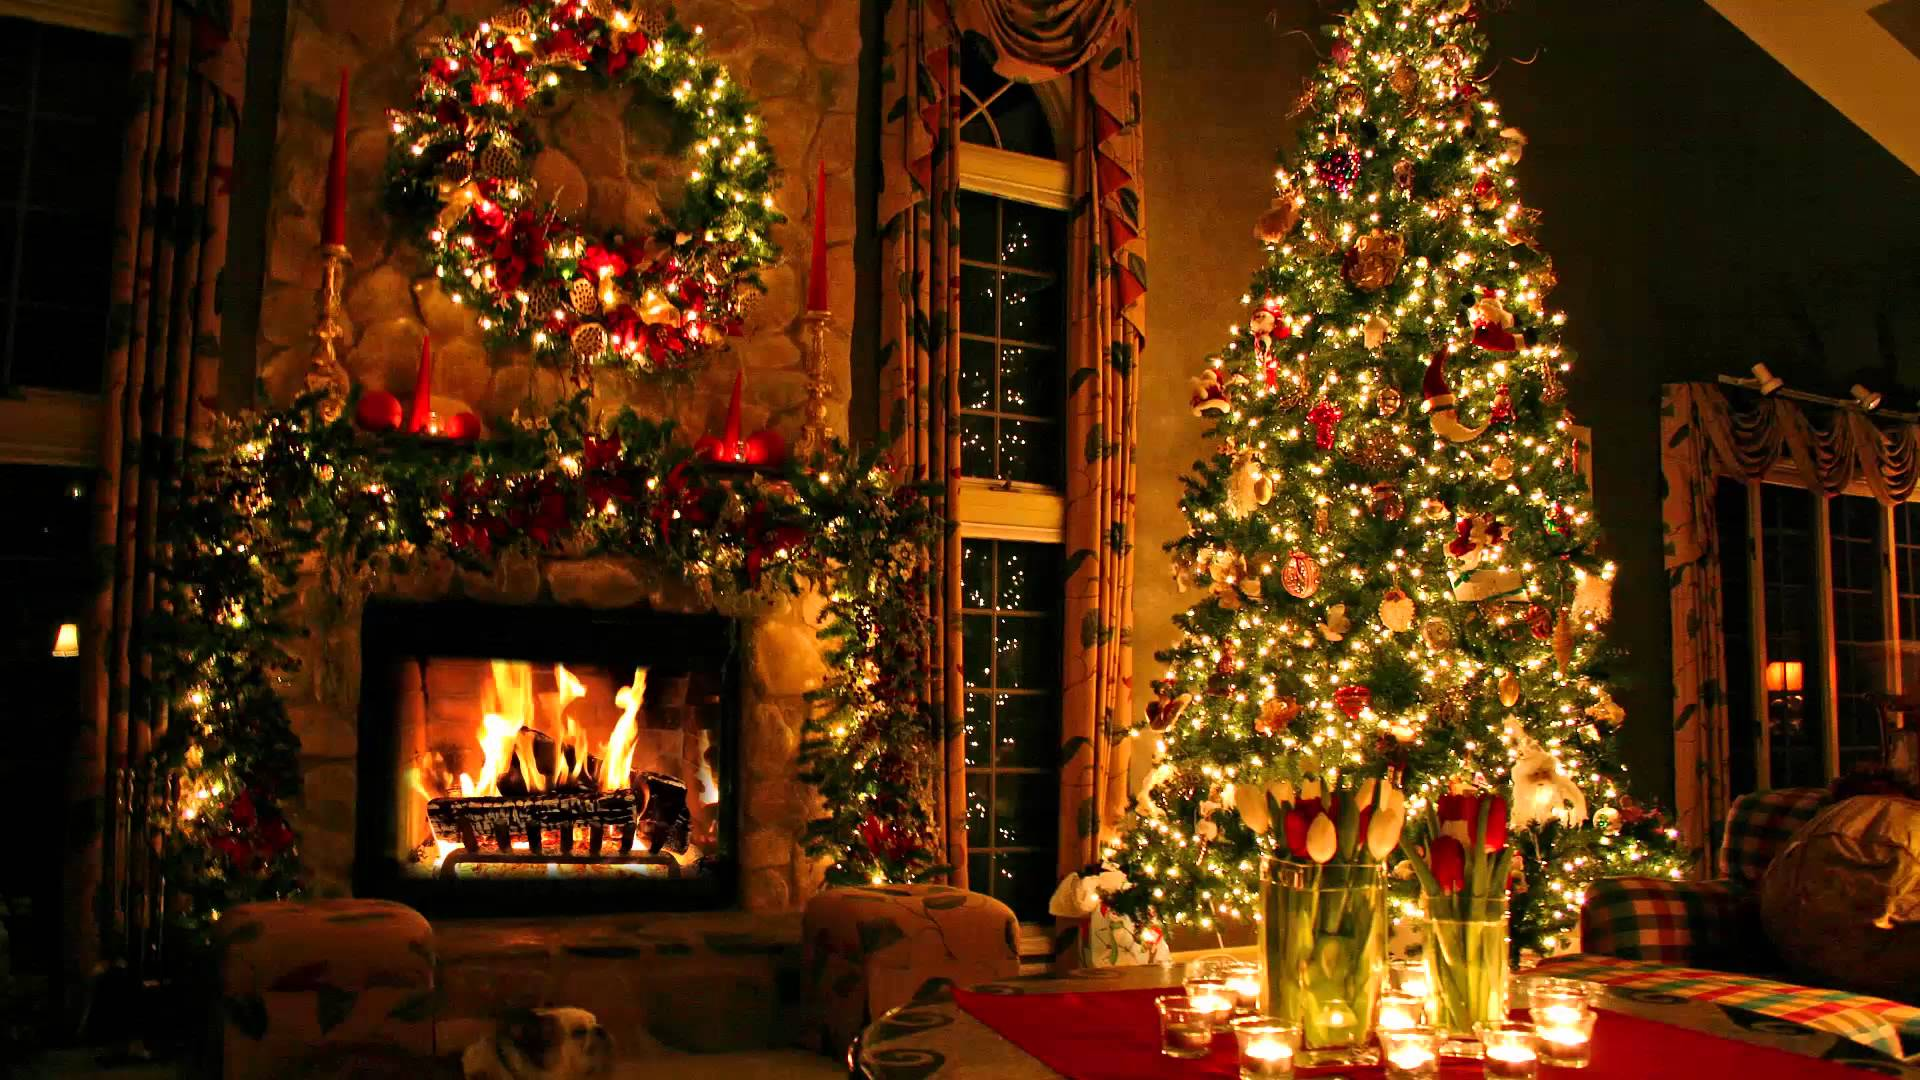 Christmas tree and fireplace   Clip Art Library 1920x1080